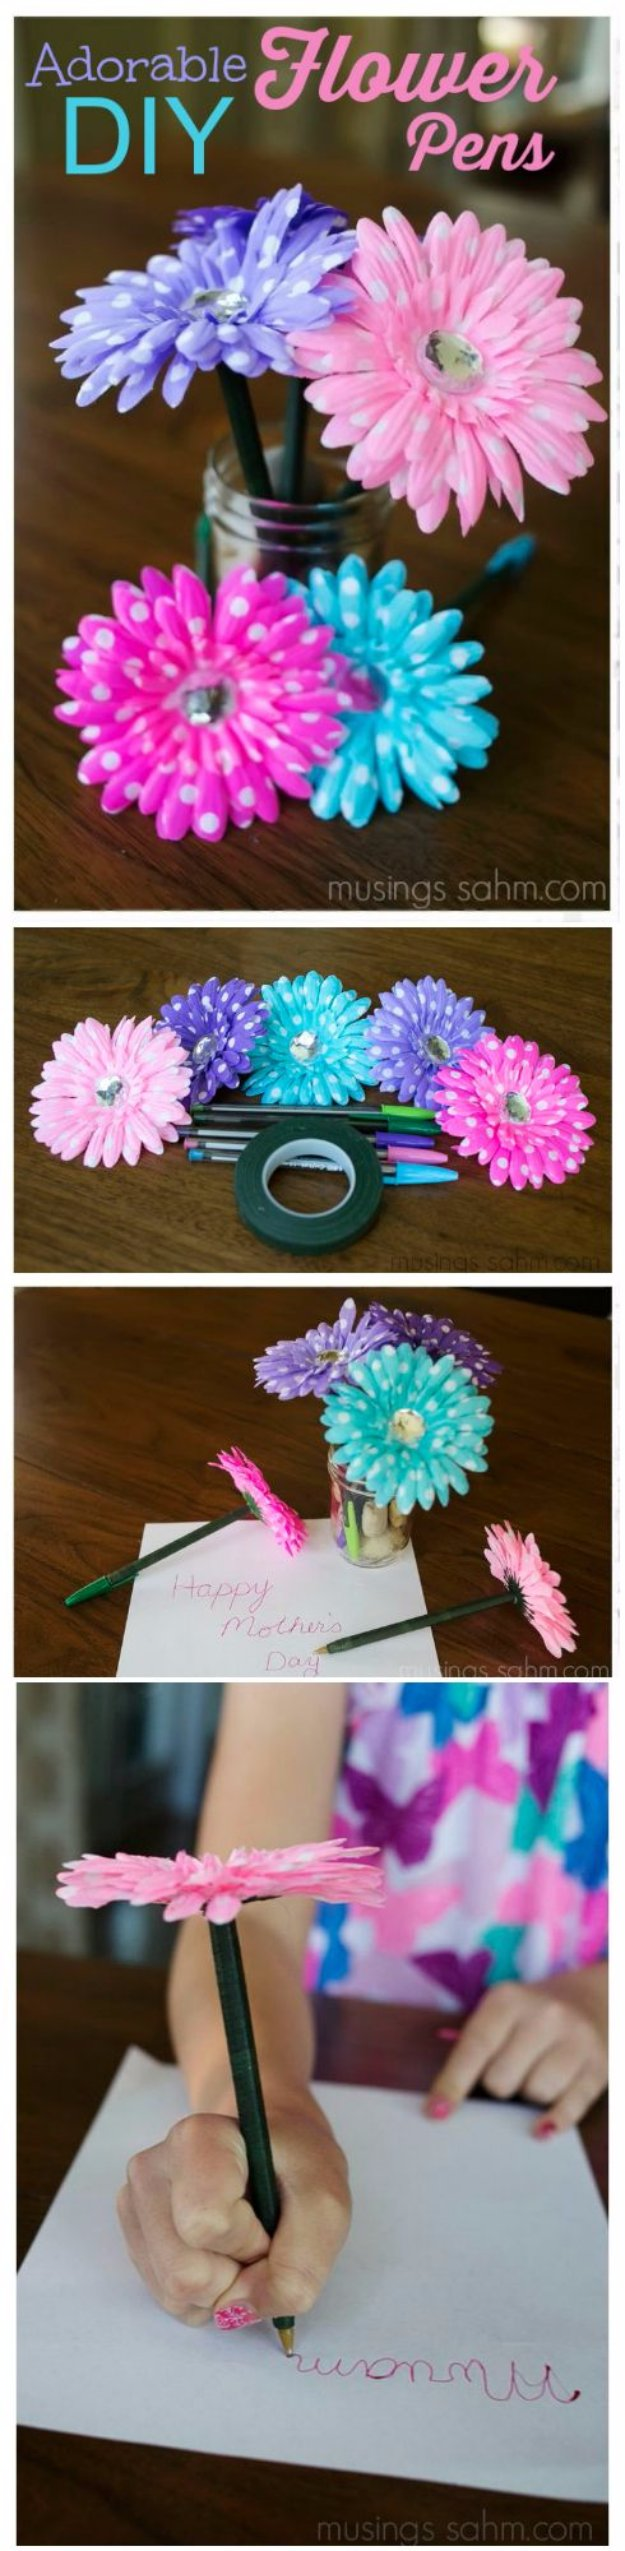 Easy Crafts To Make and Sell - Adorable Flower Pens - Cool Homemade Craft Projects You Can Sell On Etsy, at Craft Fairs, Online and in Stores. Quick and Cheap DIY Ideas that Adults and Even Teens #craftstosell #diyideas #crafts